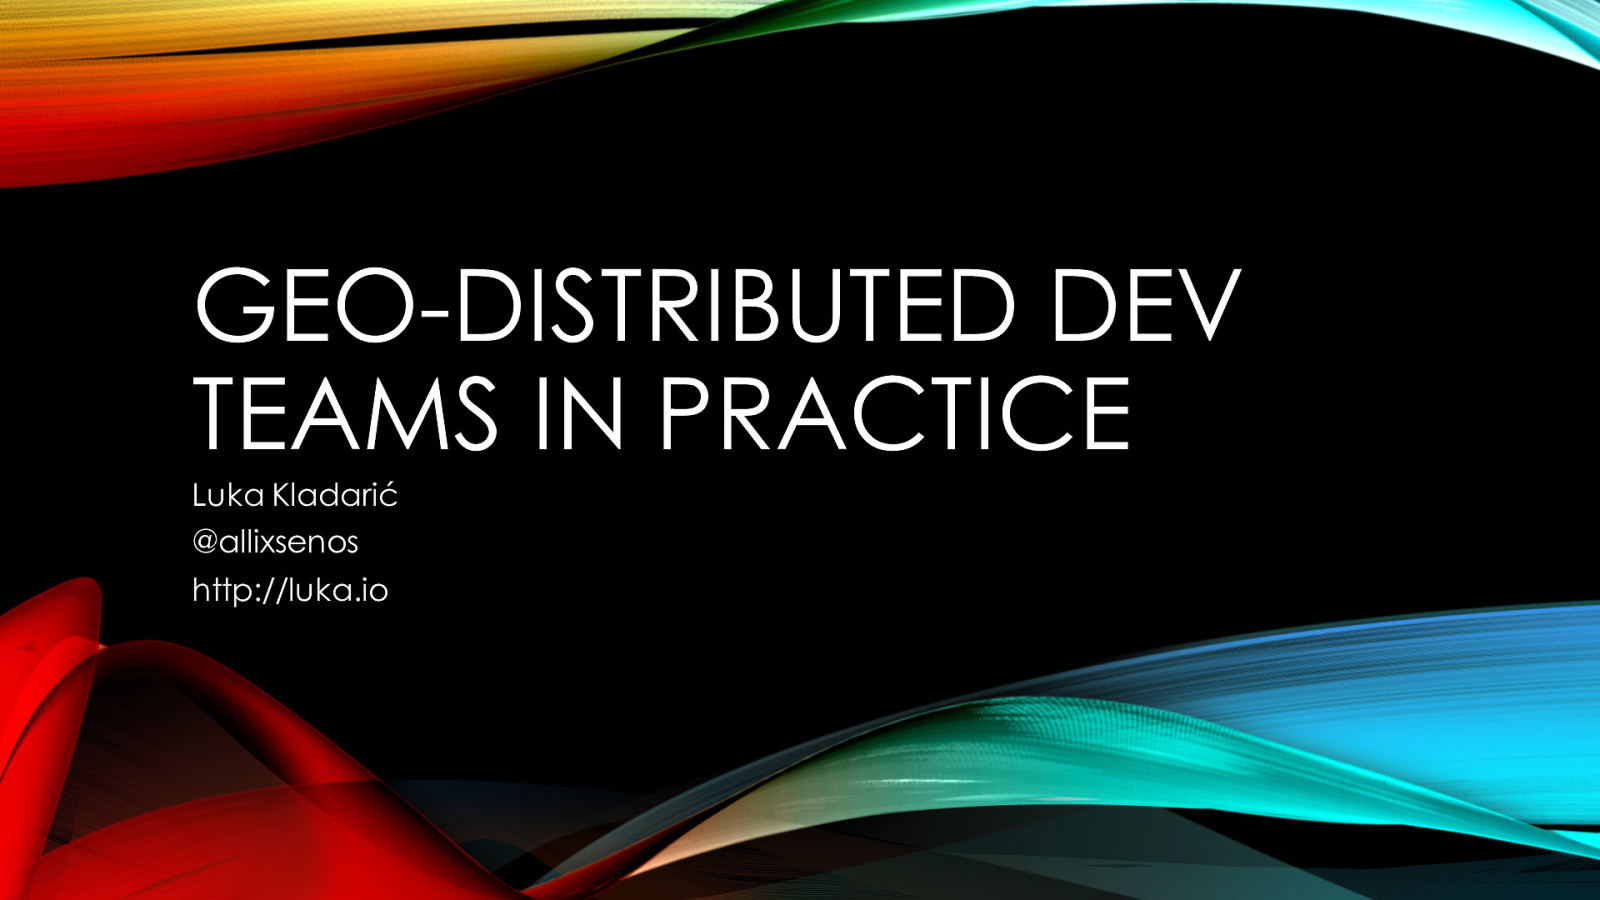 Geo-distributed Development Teams in Practice